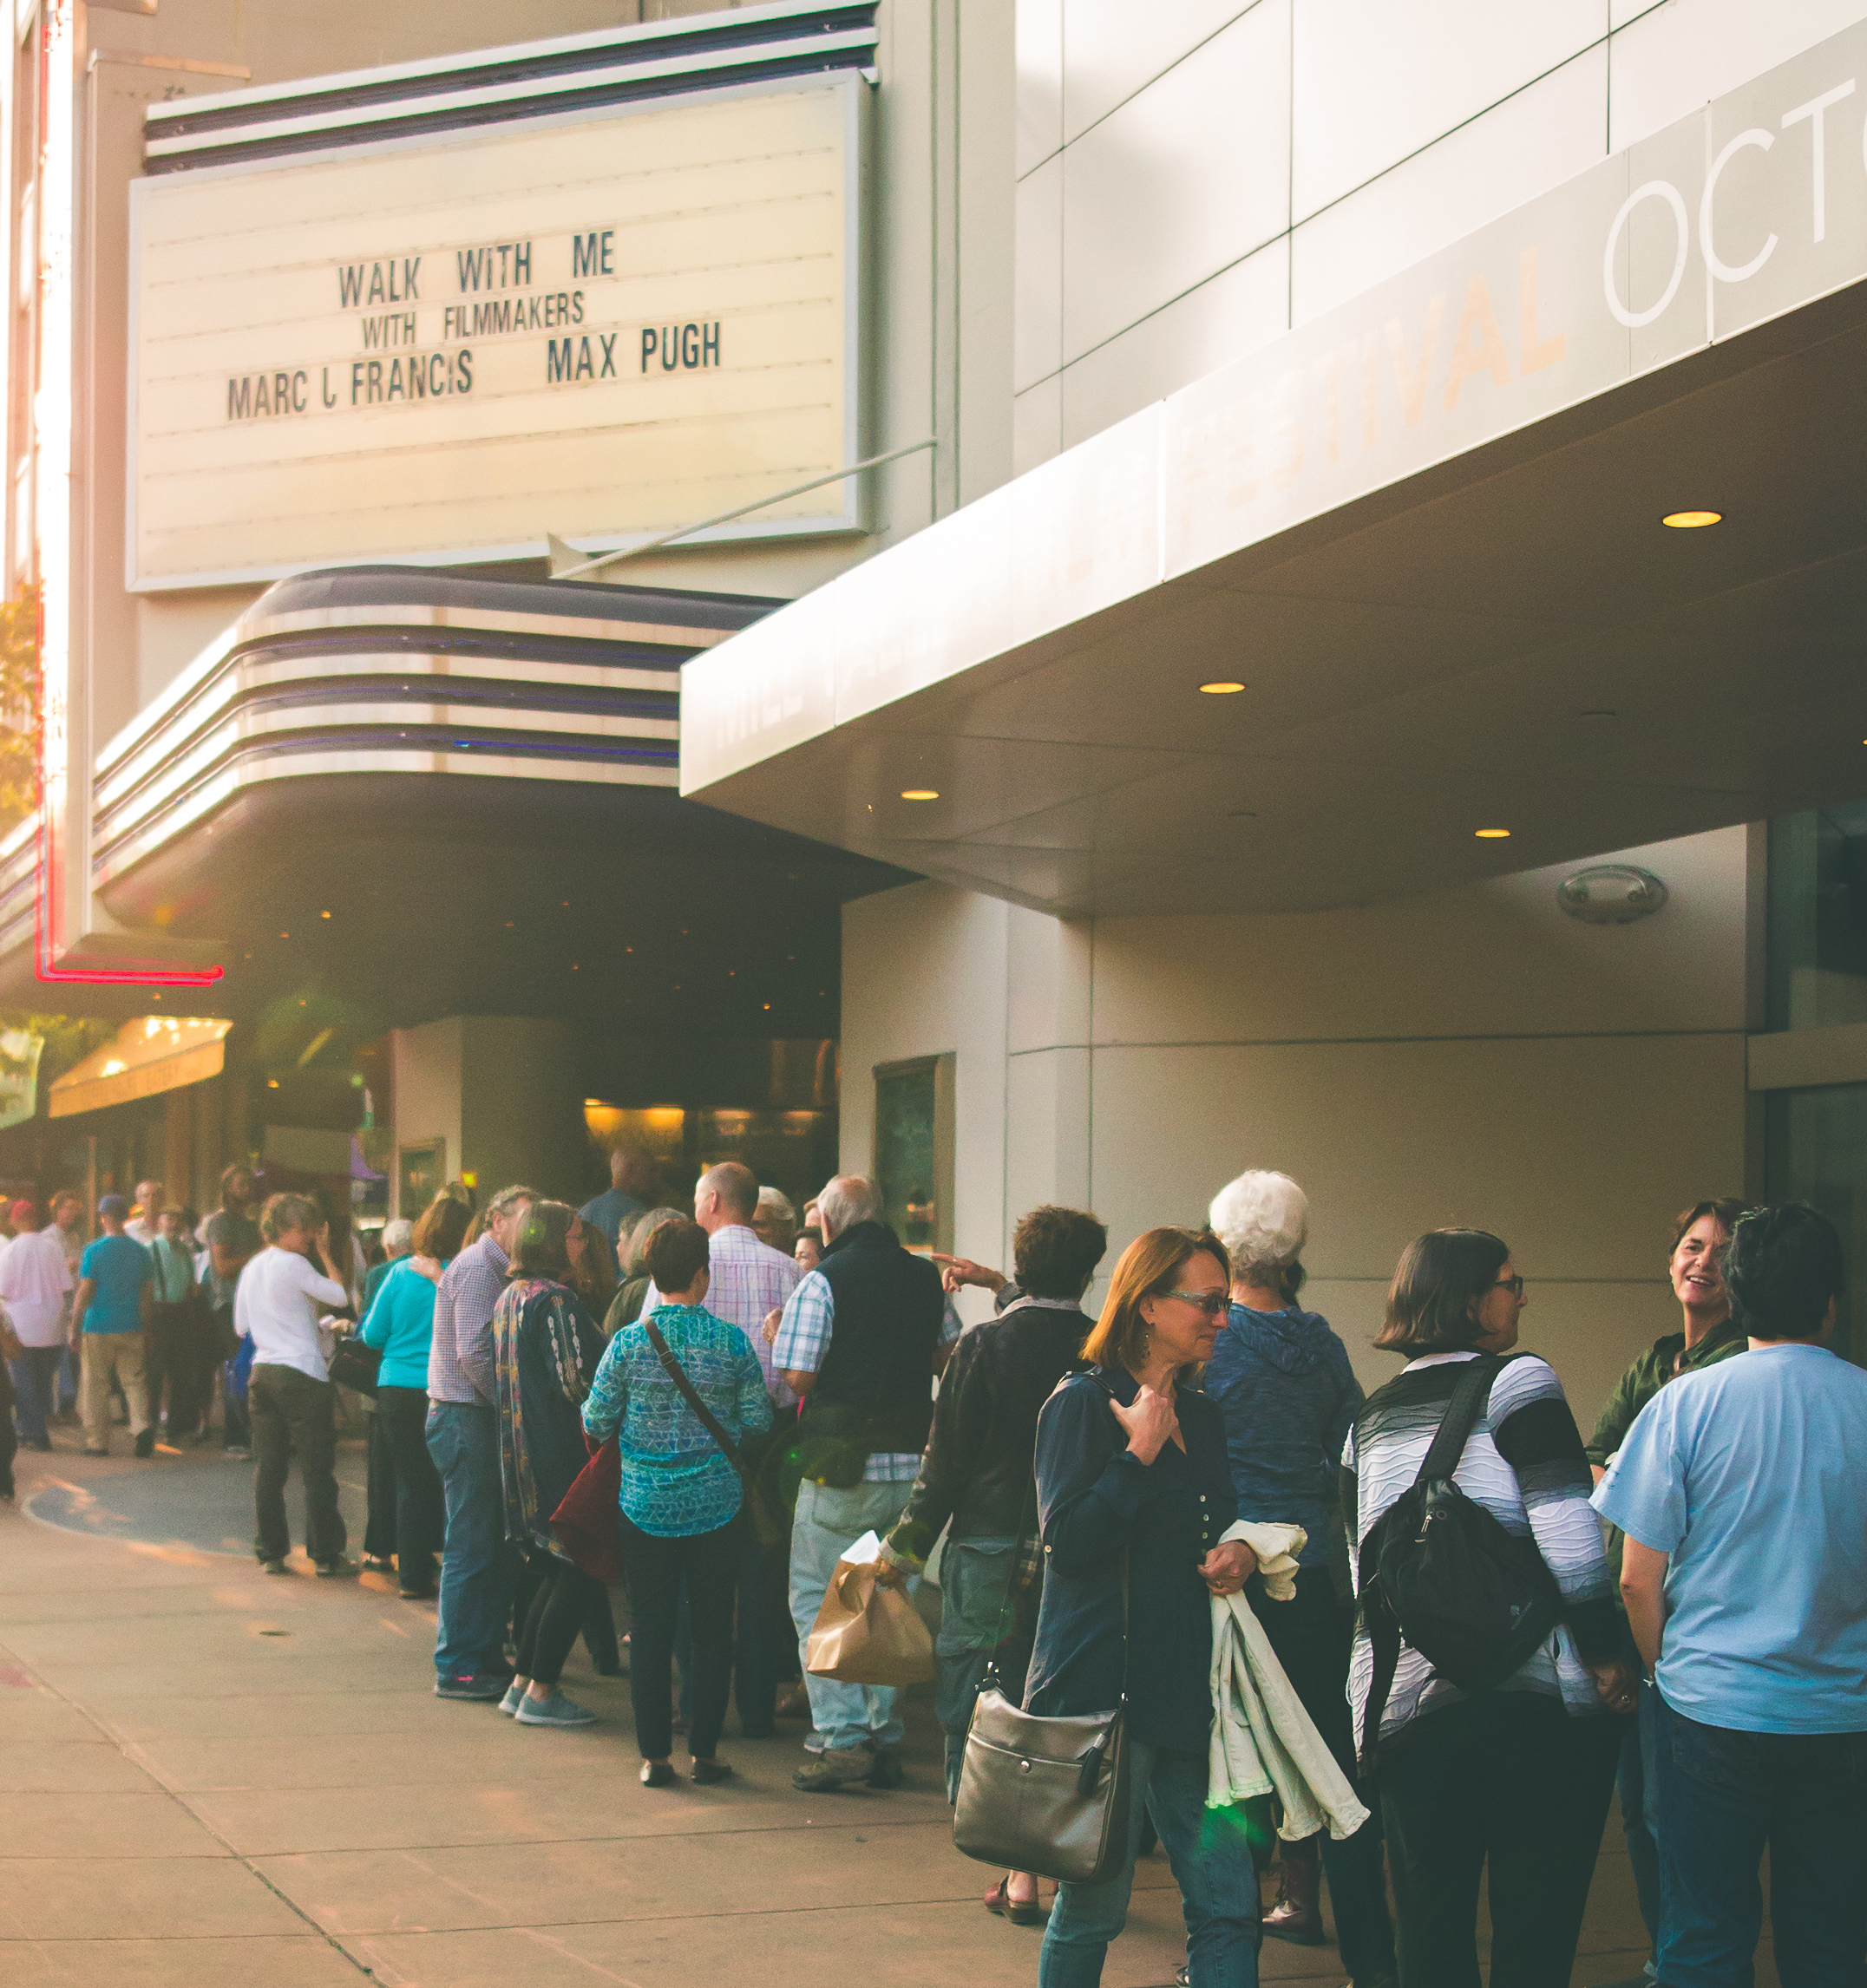 Sold Out Crowd waiting in line to see Walk With Me at the Smith Rafael Film Center